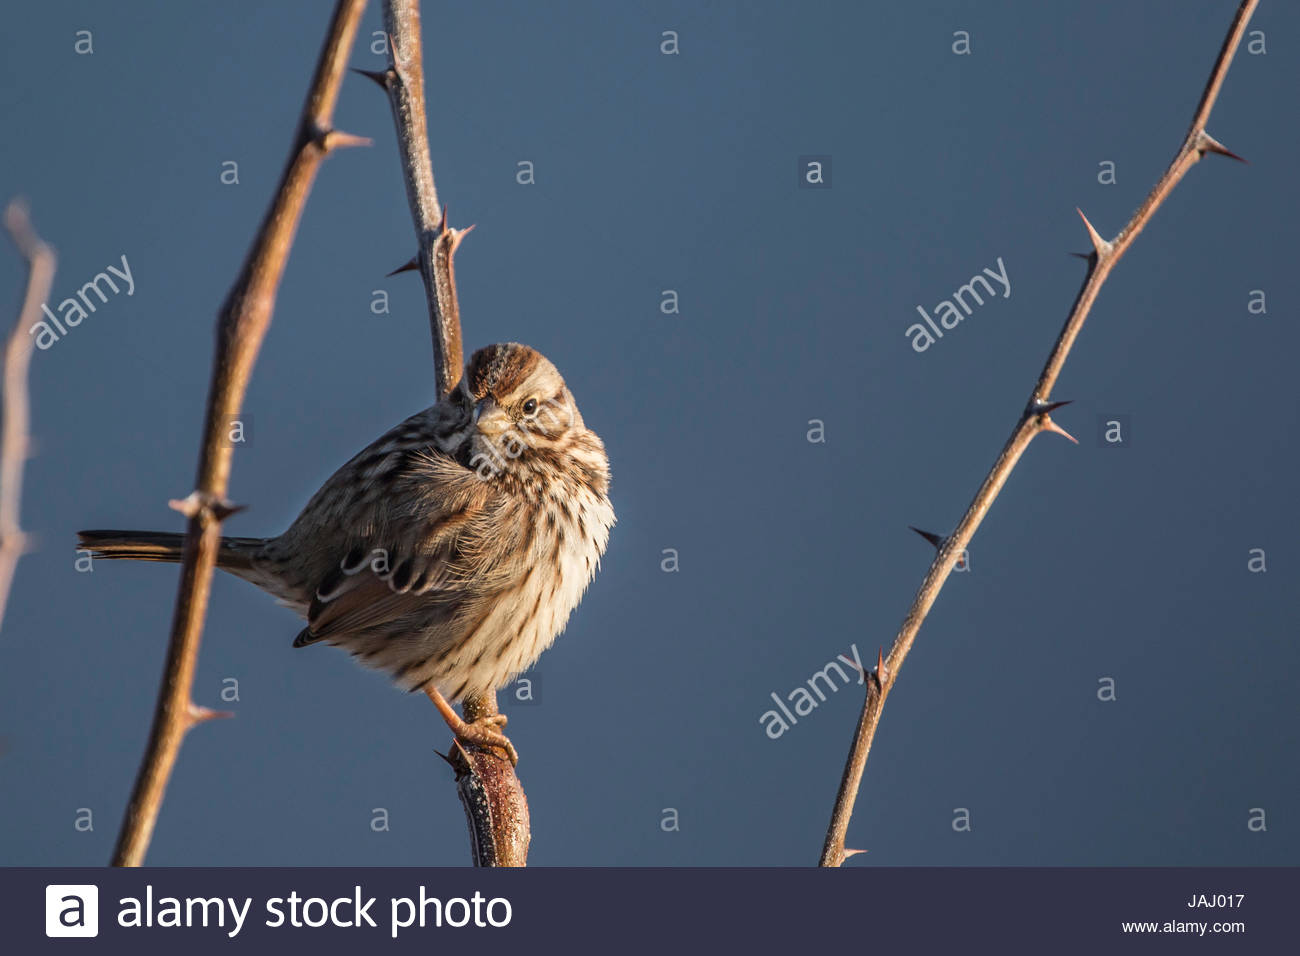 Portrait of a song sparrow, Melospiza melodia, perched on a thorny twig. - Stock Image